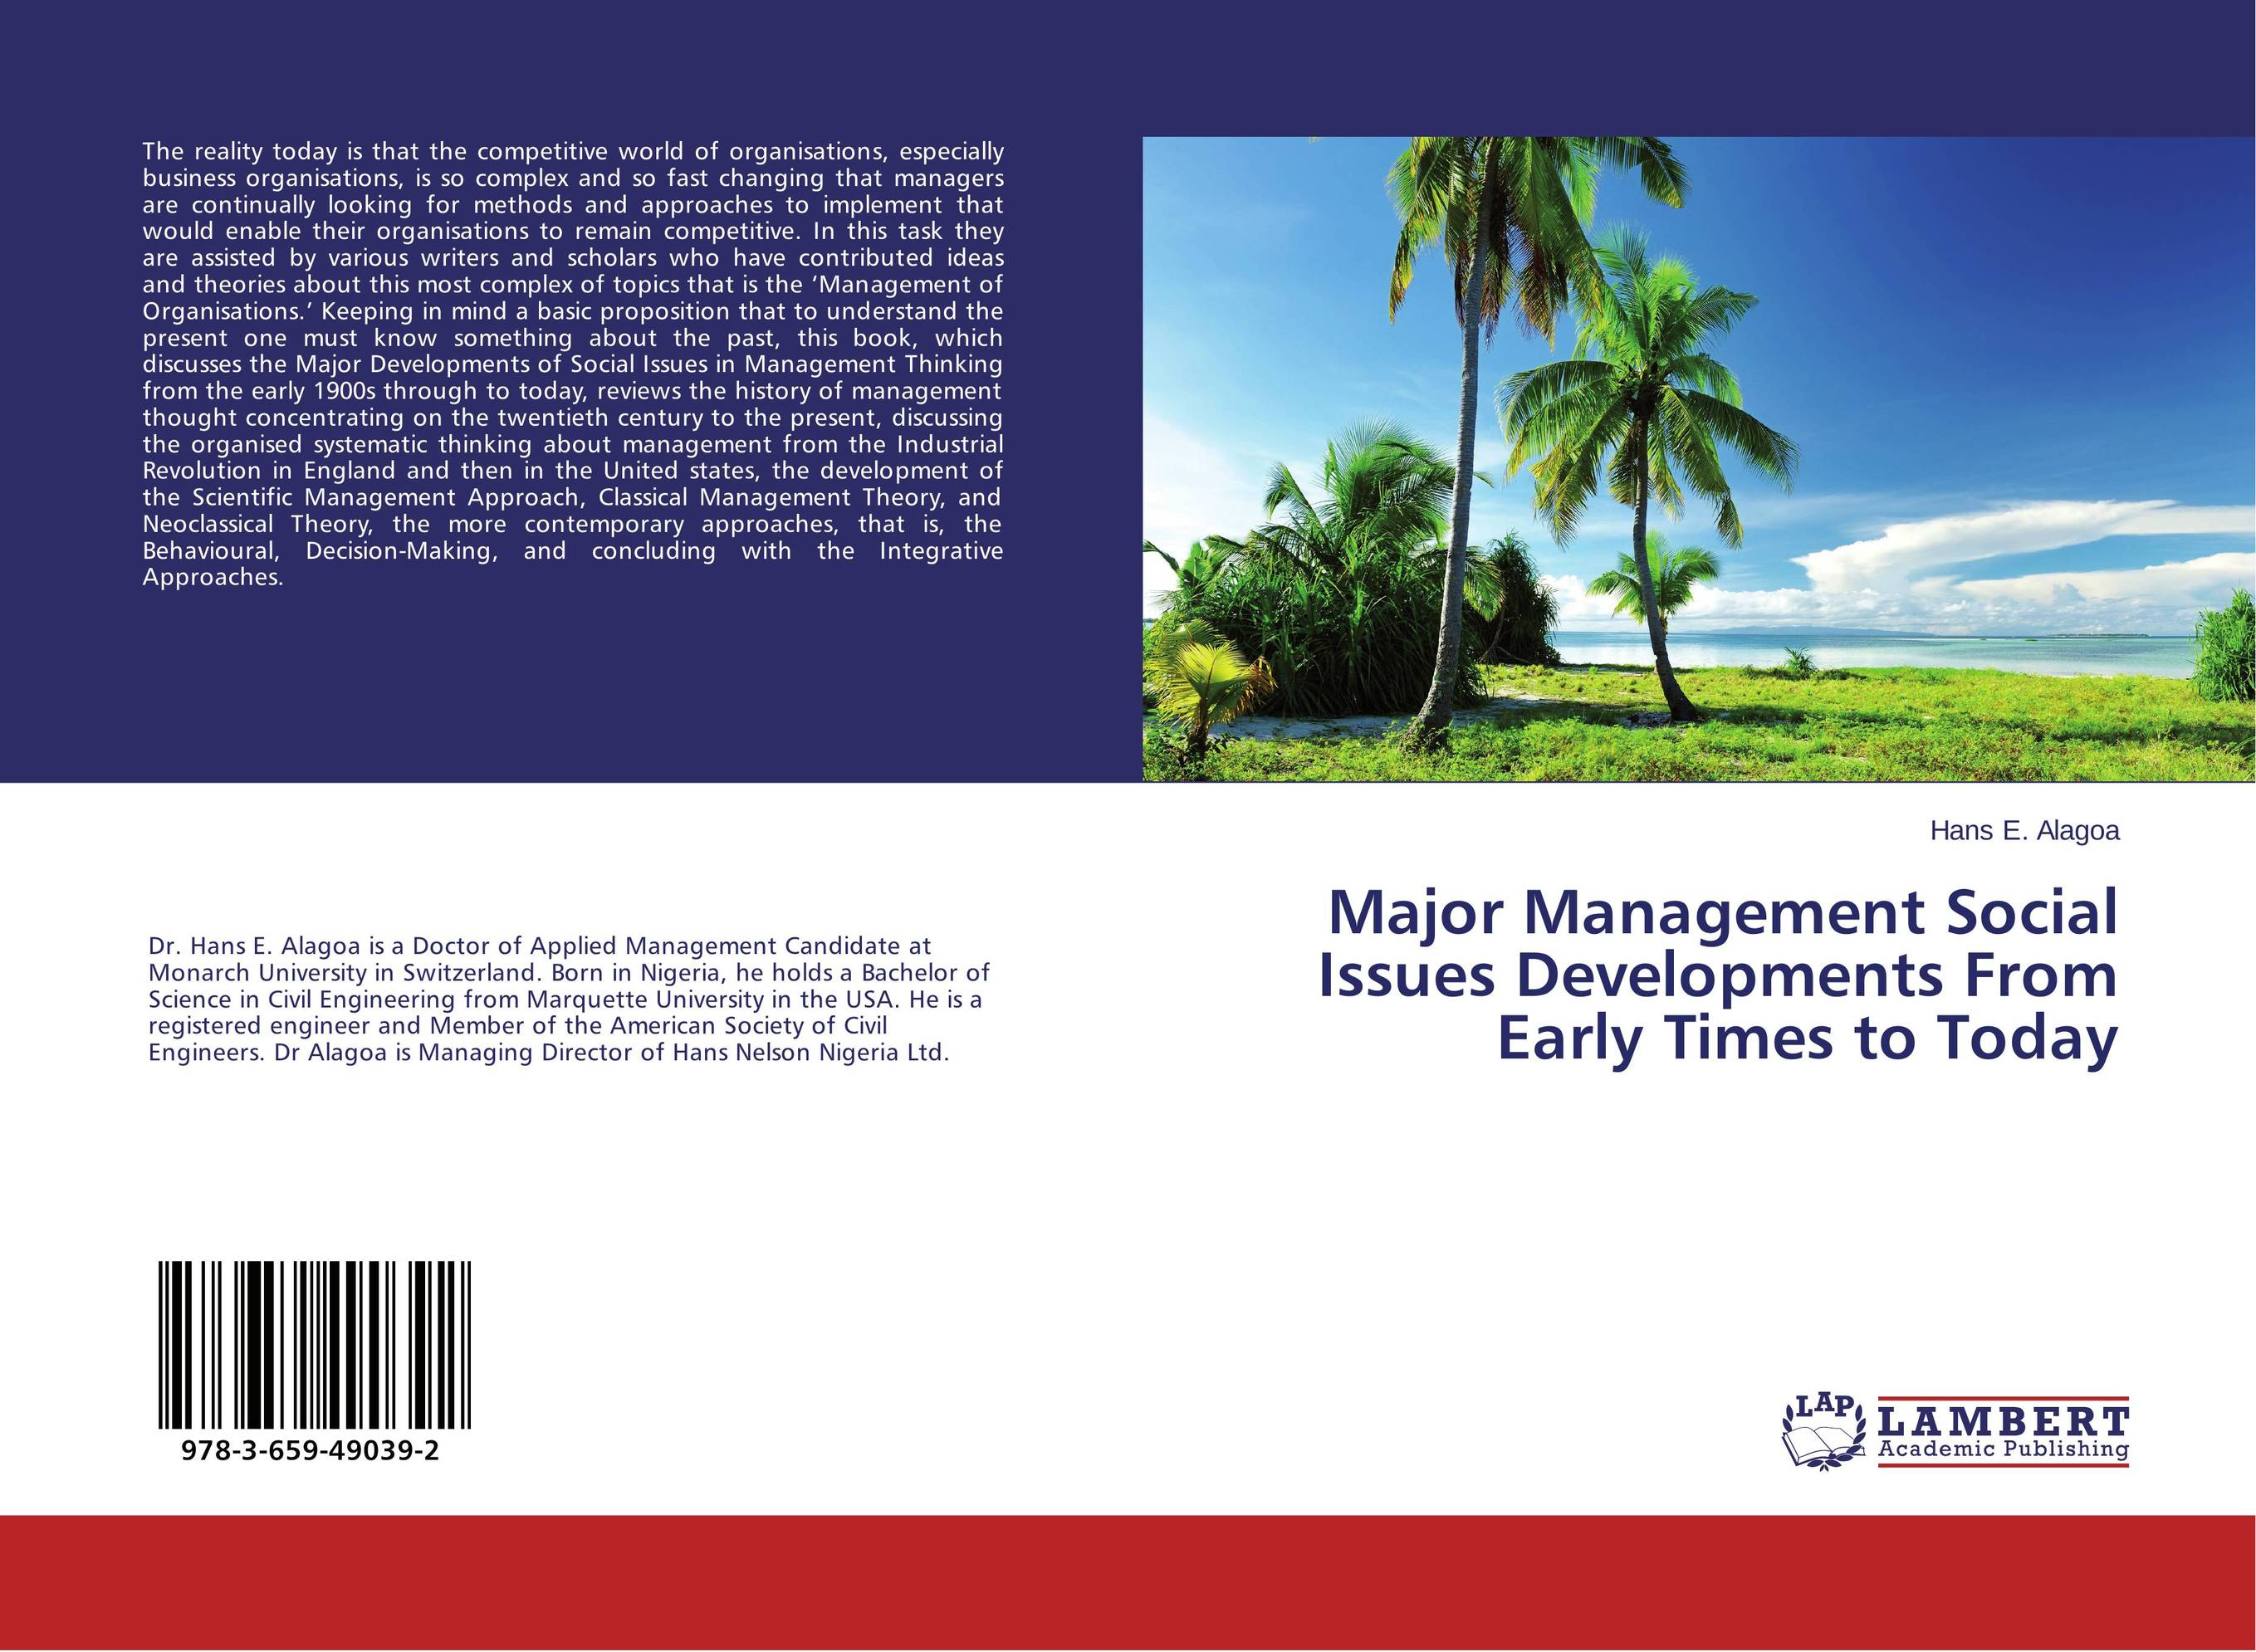 Major Management Social Issues Developments From Early Times to Today a decision support tool for library book inventory management